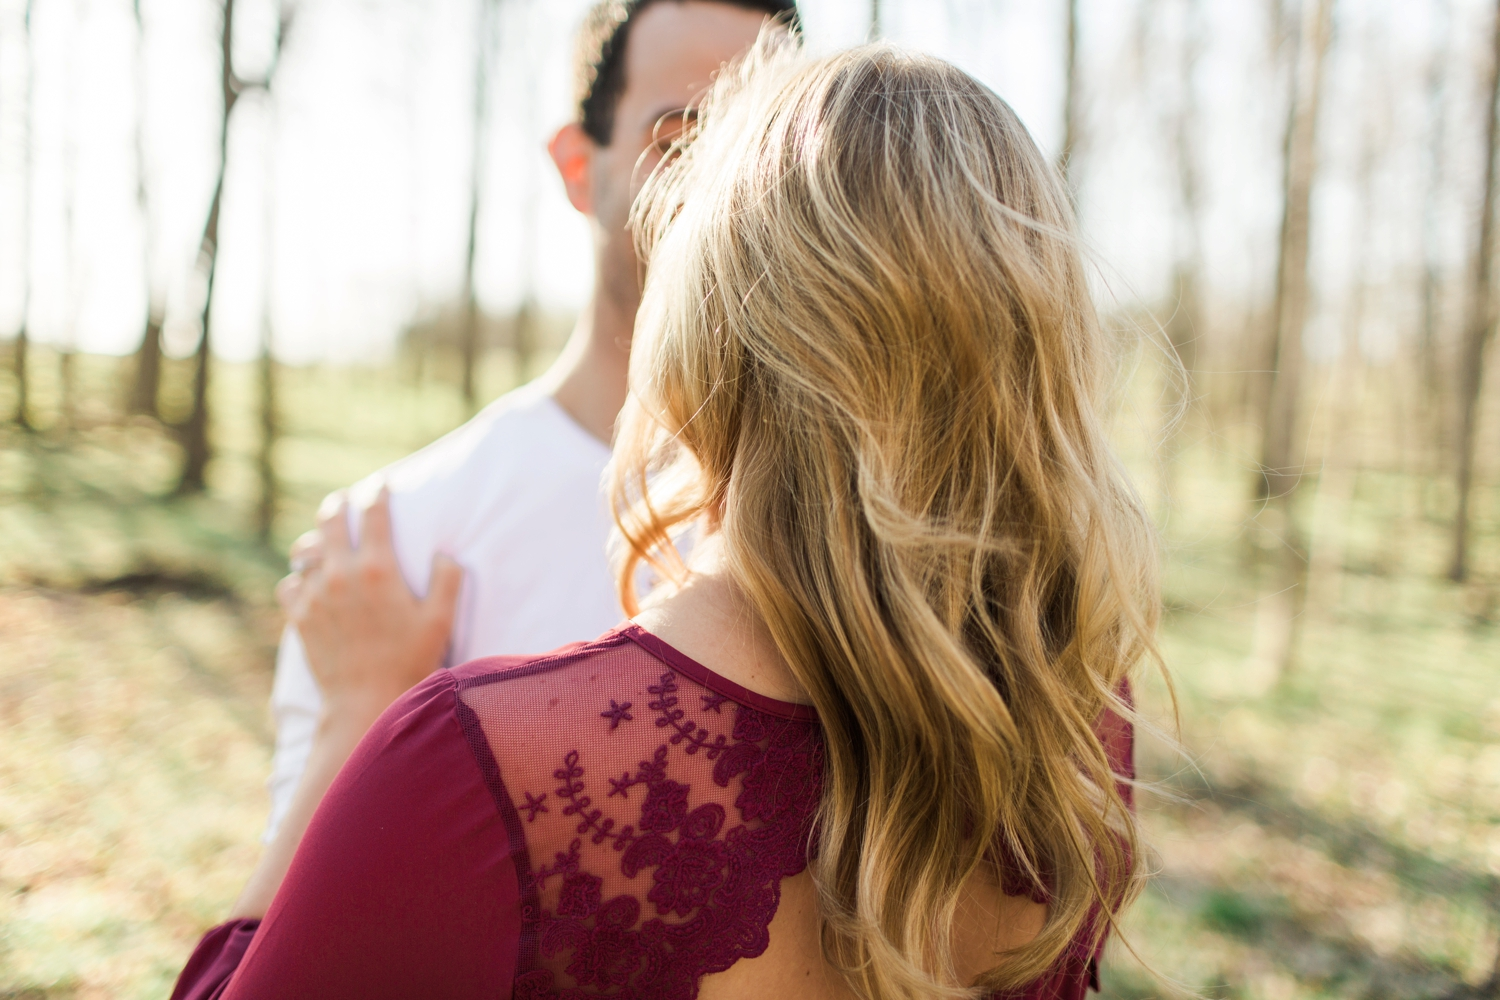 indianapolis_wedding_photographer_golden_hour_engagement_chloe_luka_photography_6101.jpg